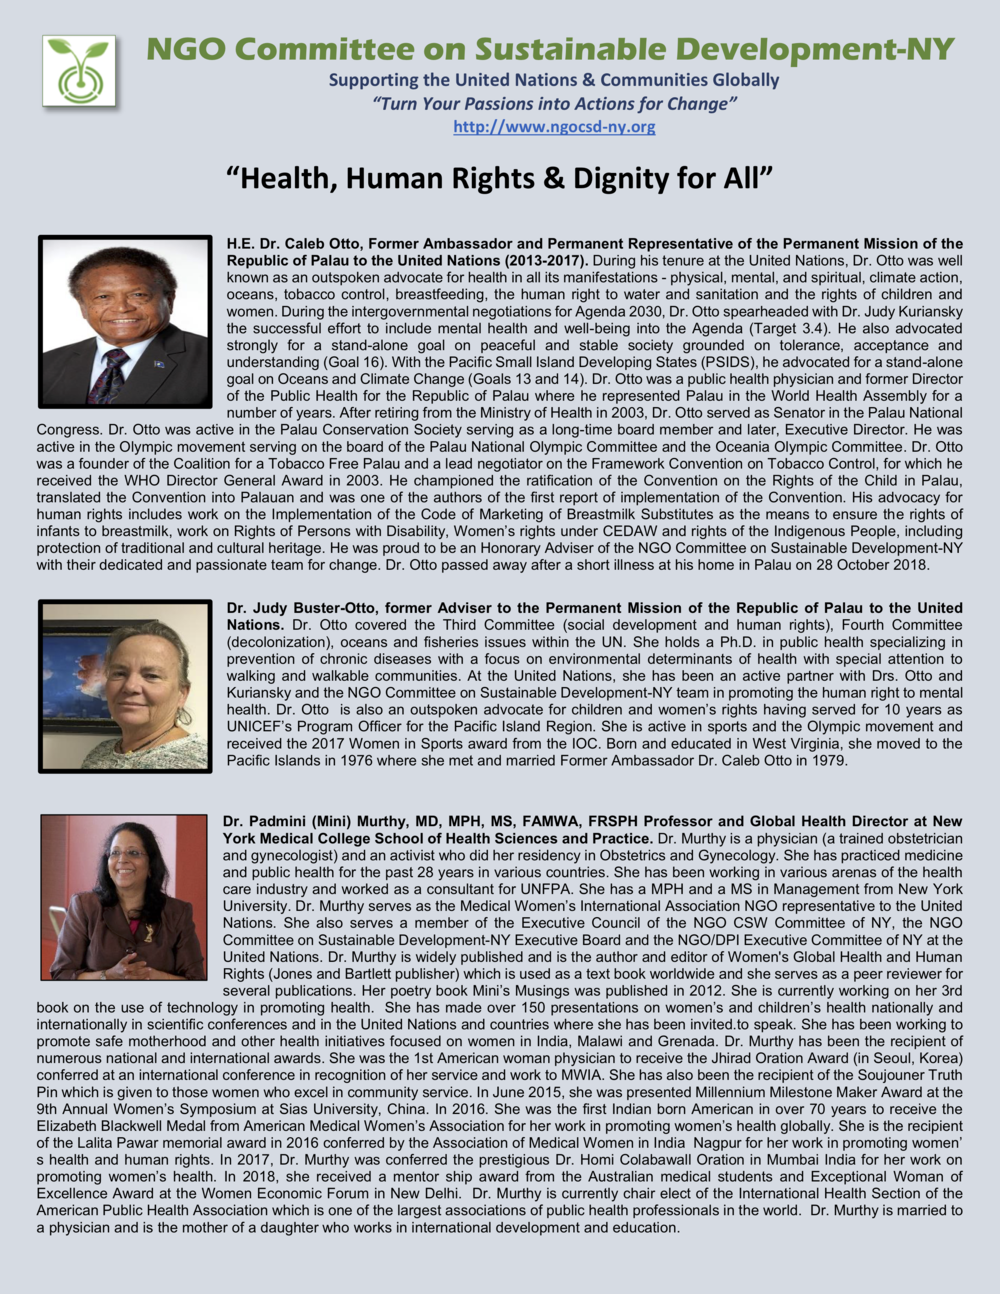 NGOCSD-NY 12-19-18 Health, Human Rights Photo-Bios B2ab.png